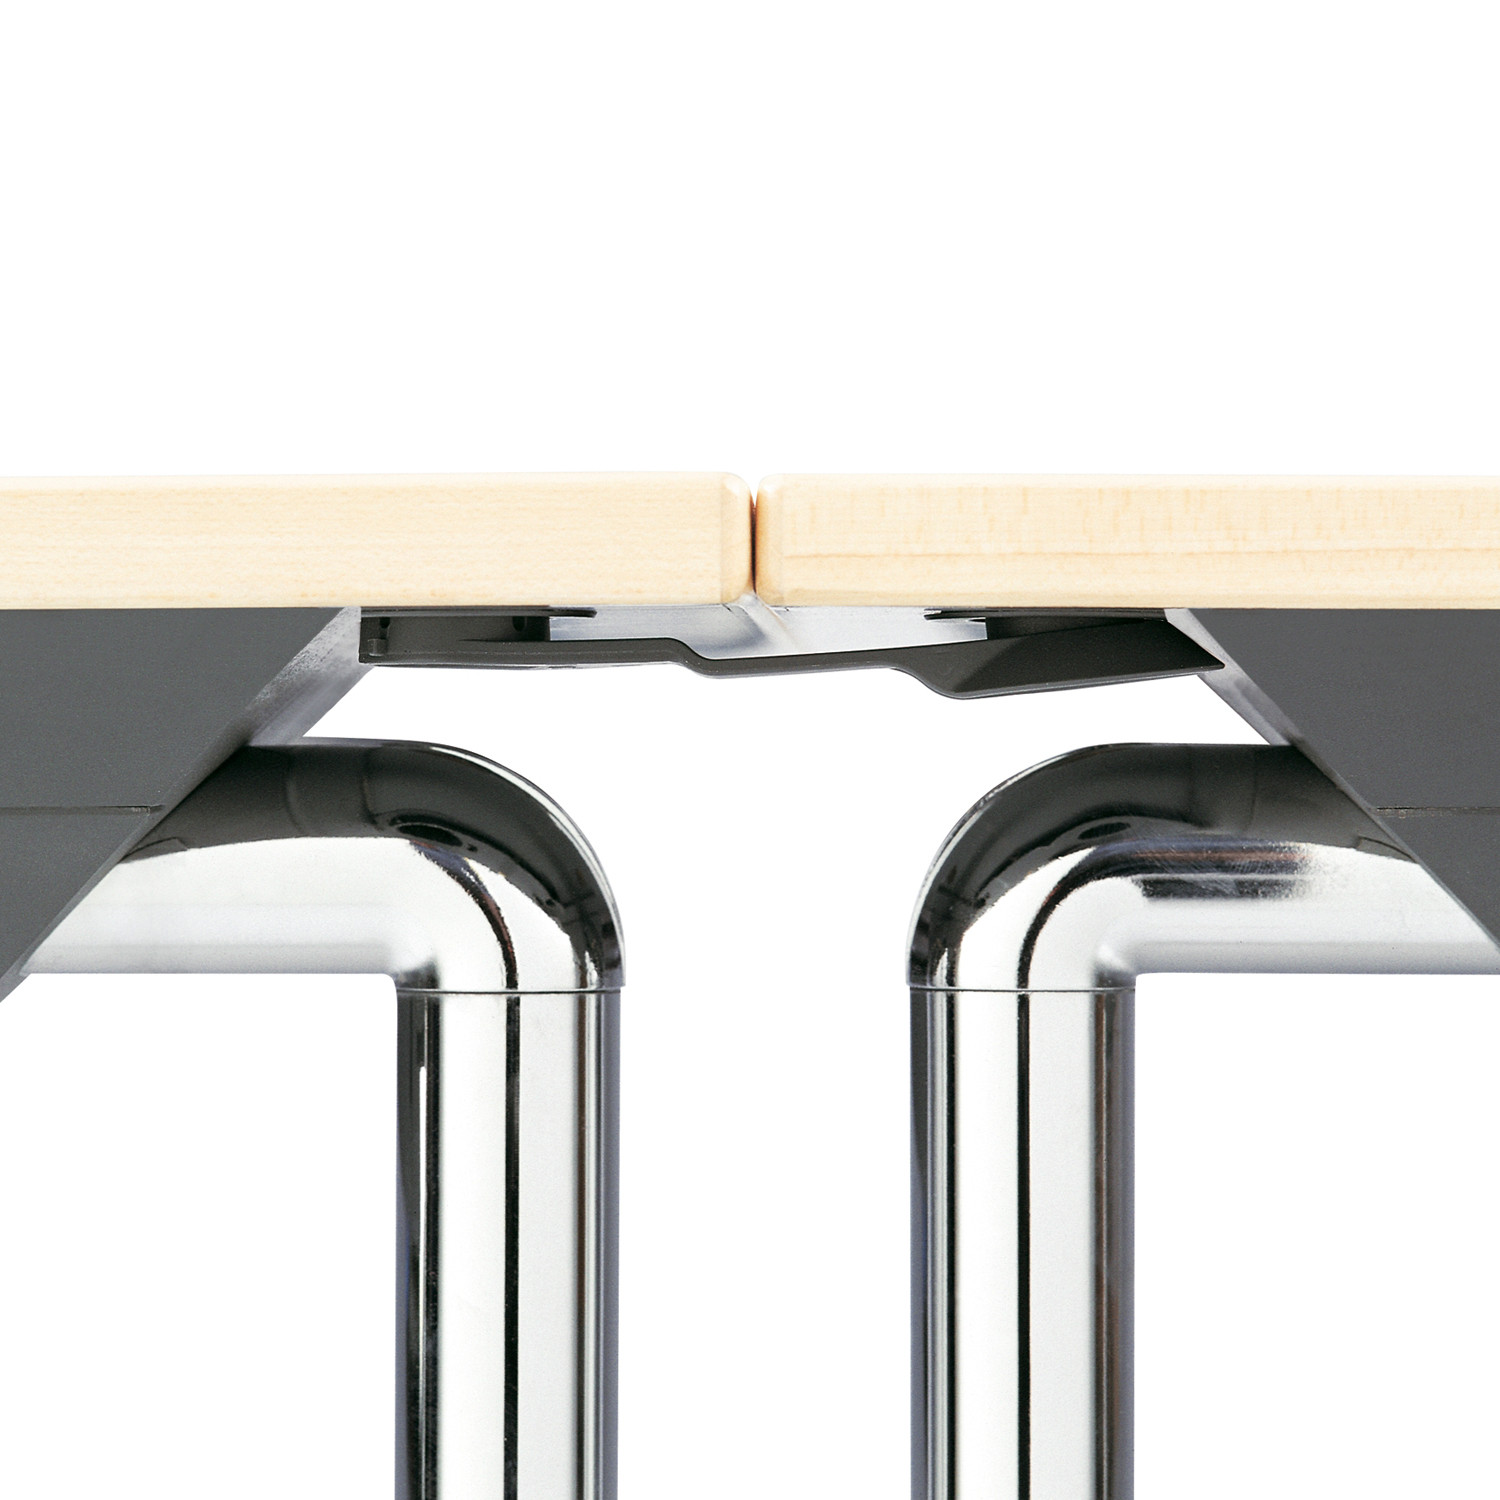 Howe Plico Tables linked